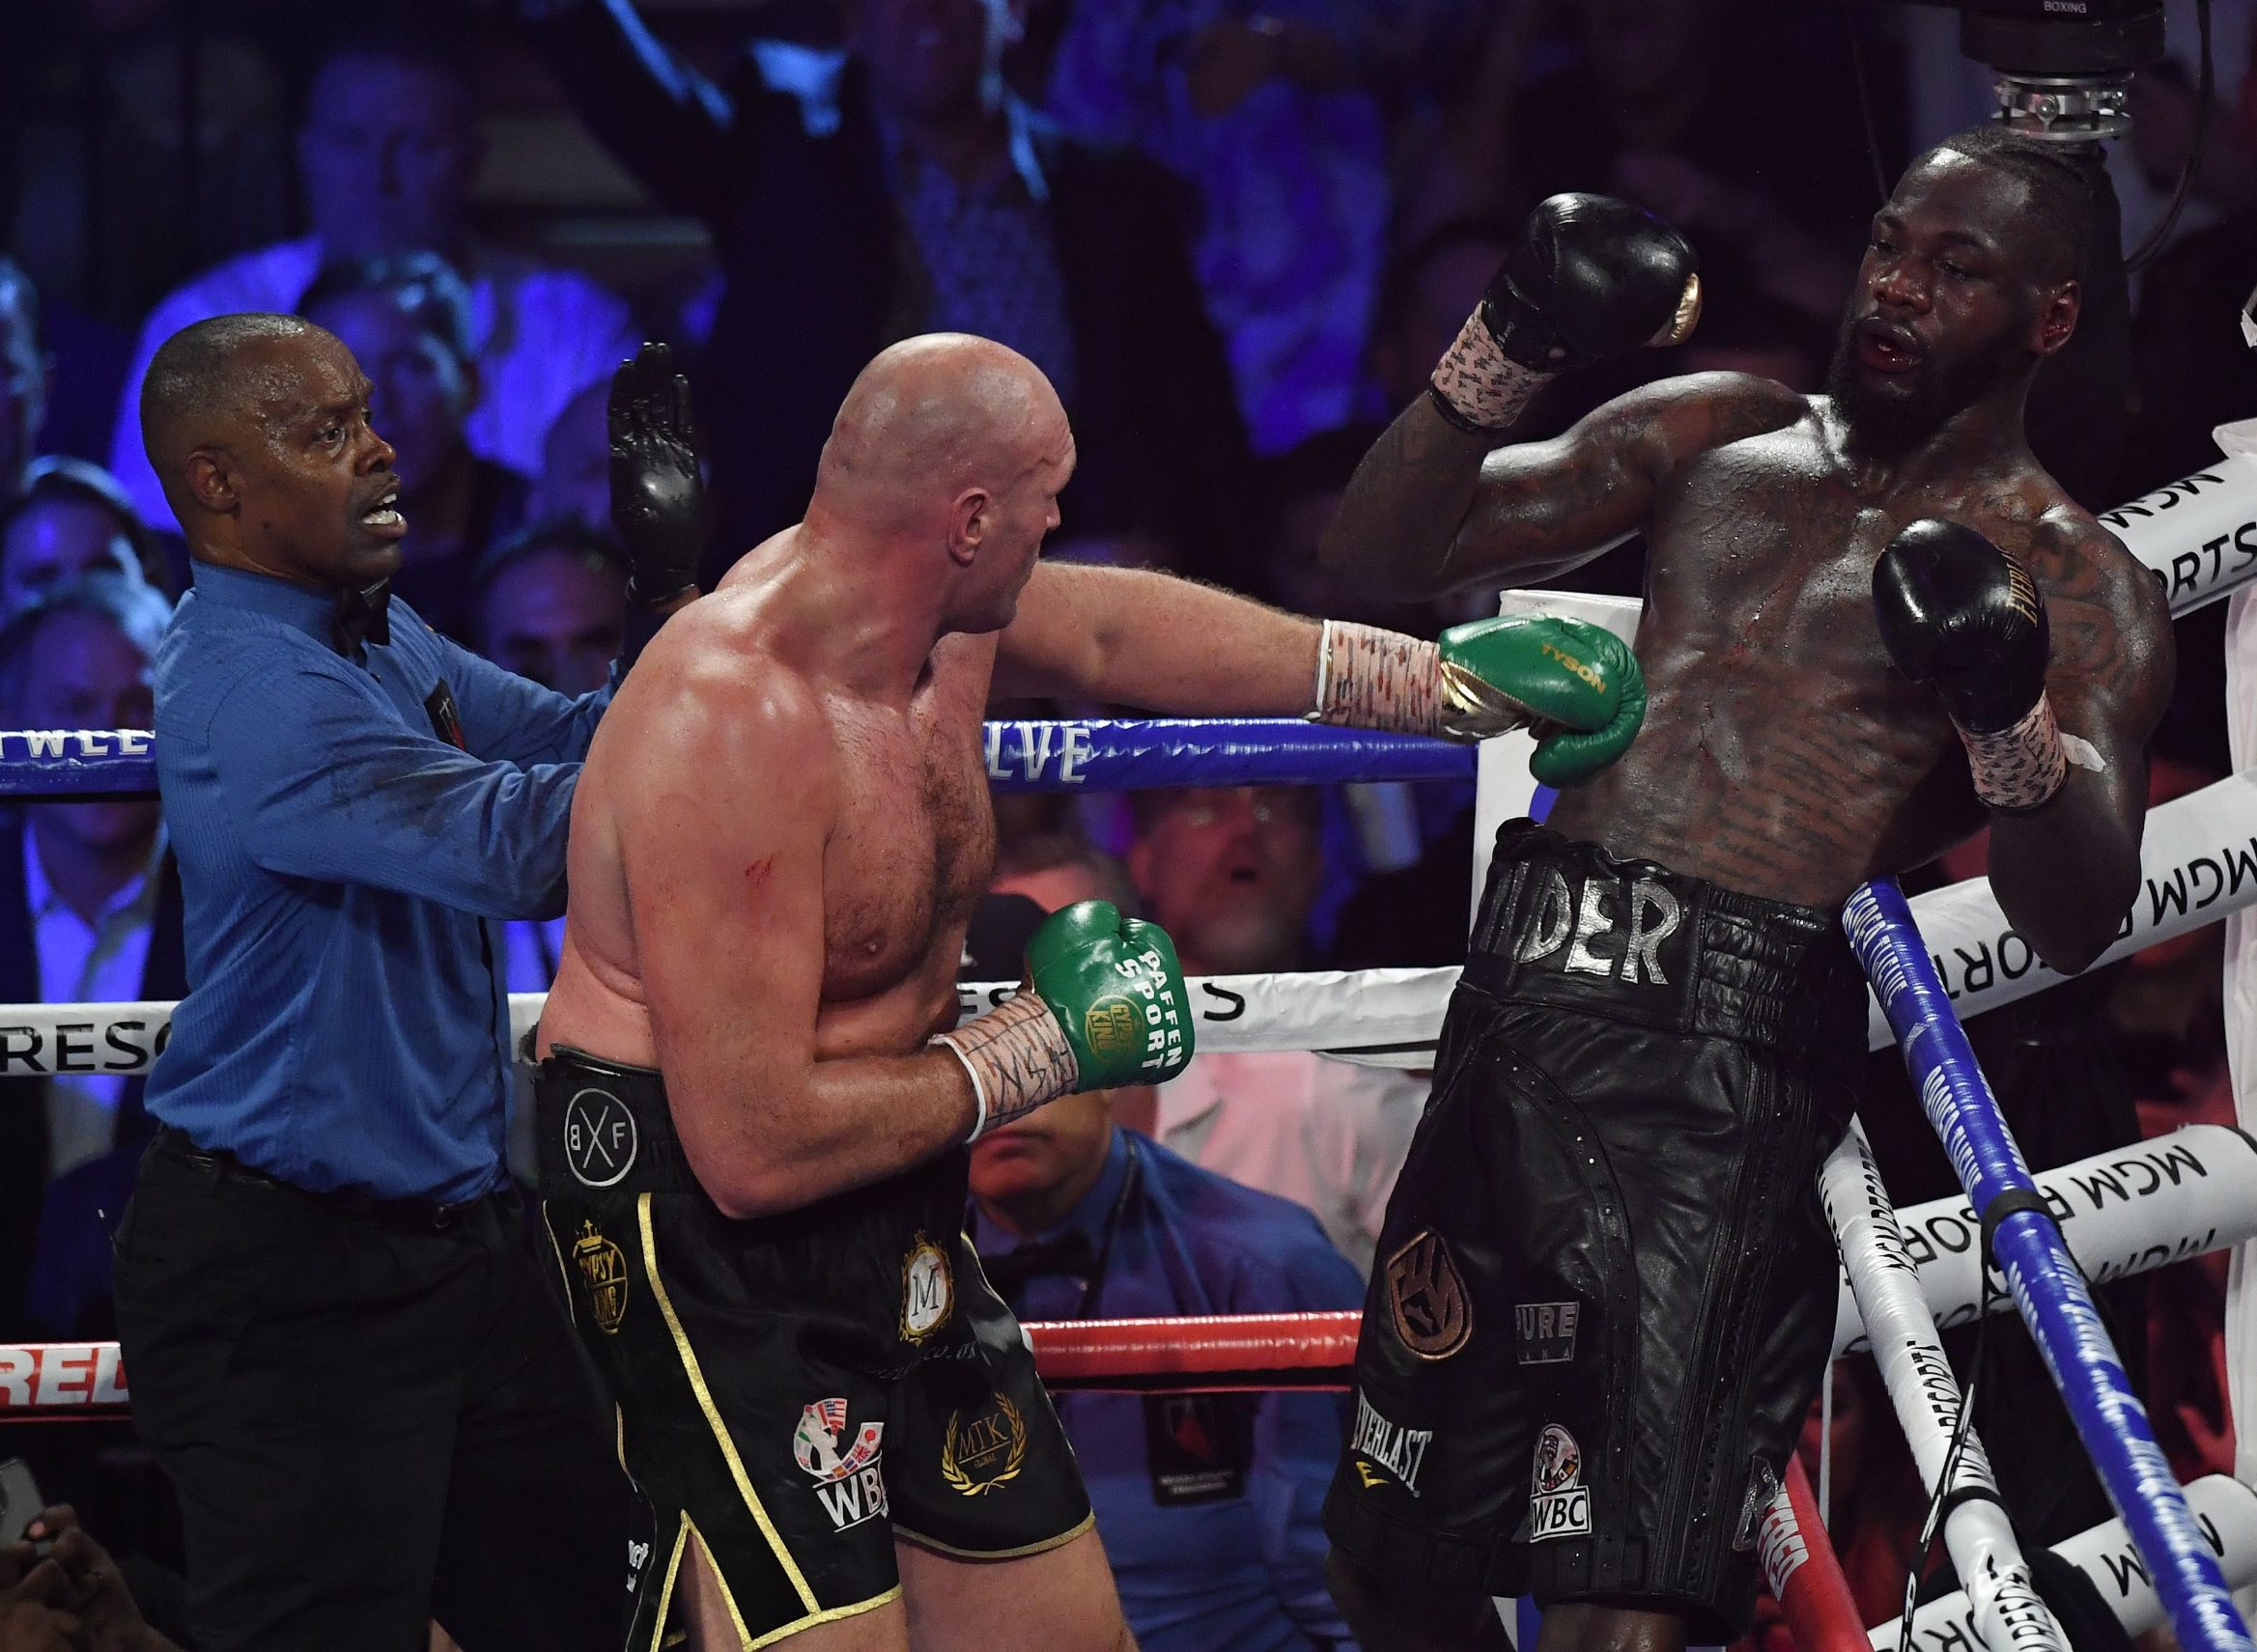 Referee Kenny Bayless stops the fight after the towel was thrown in by Wilder's trainer as British boxer Tyson Fury (L) defeats US boxer Deontay Wilder in the seventh round during their World Boxing Council (WBC) Heavyweight Championship Title boxing match at the MGM Grand Garden Arena in Las Vegas on February 22, 2020. (Photo by Mark RALSTON / AFP)